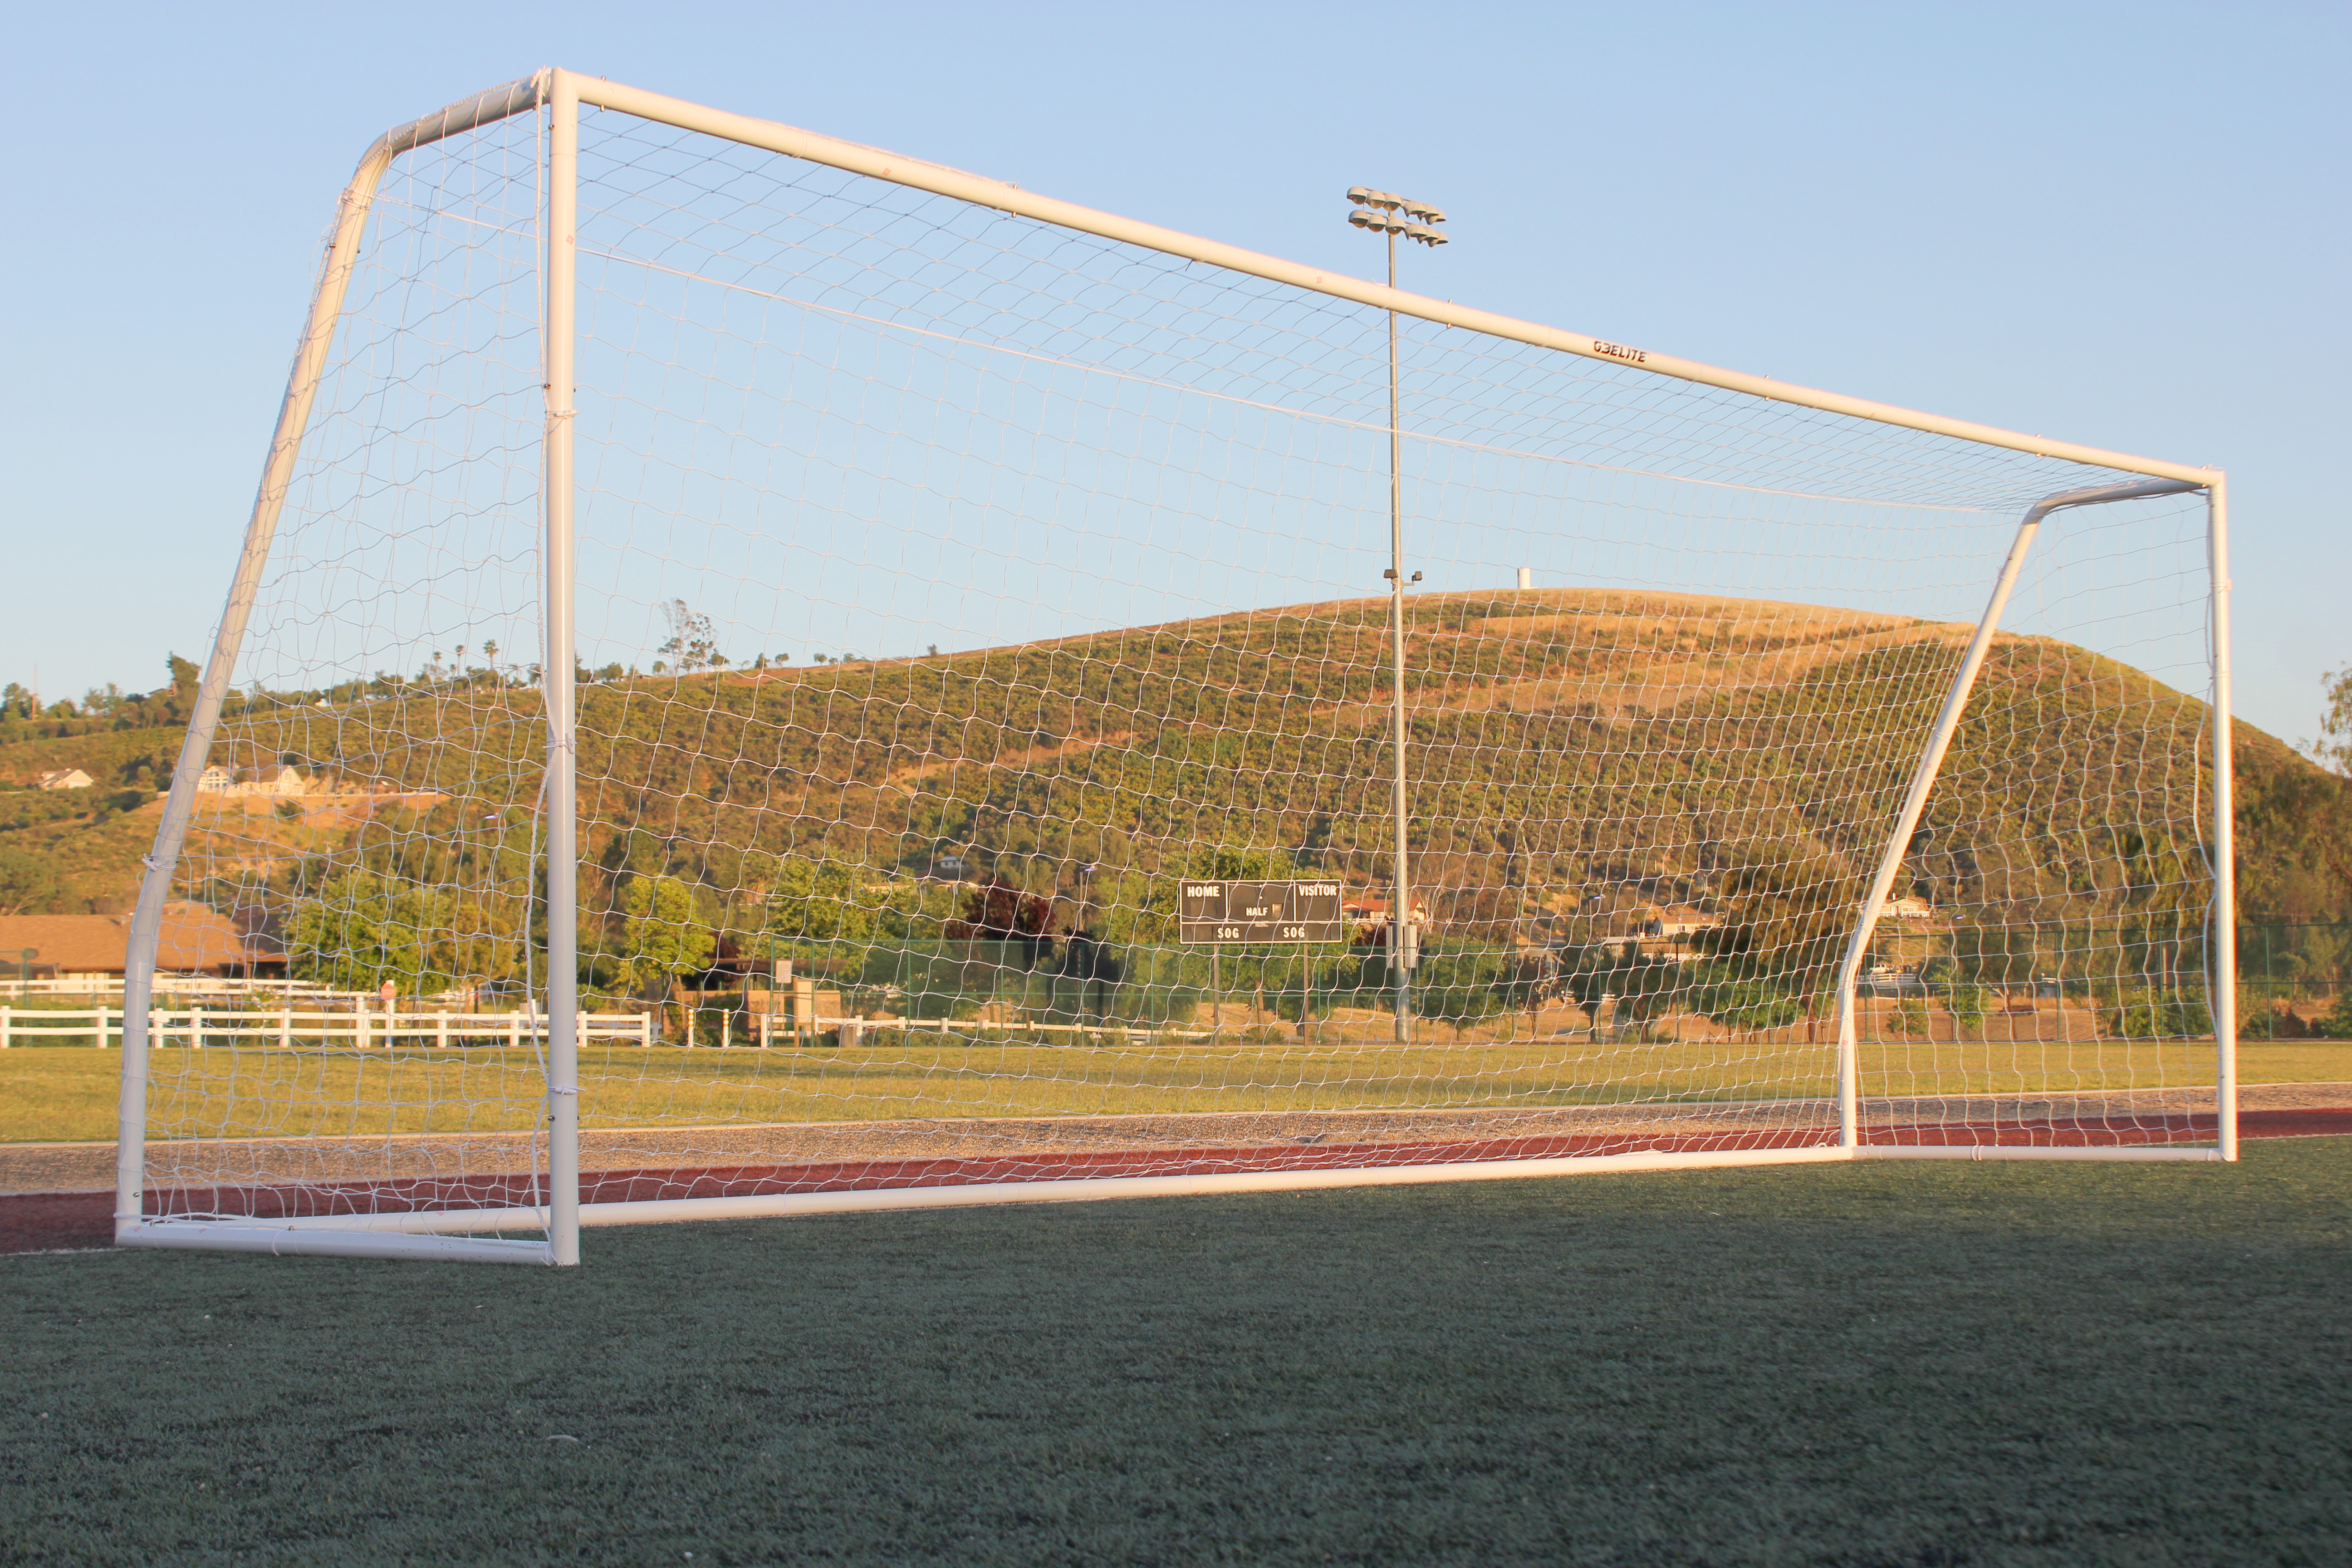 24x8 Weather Resistant Soccer Goal